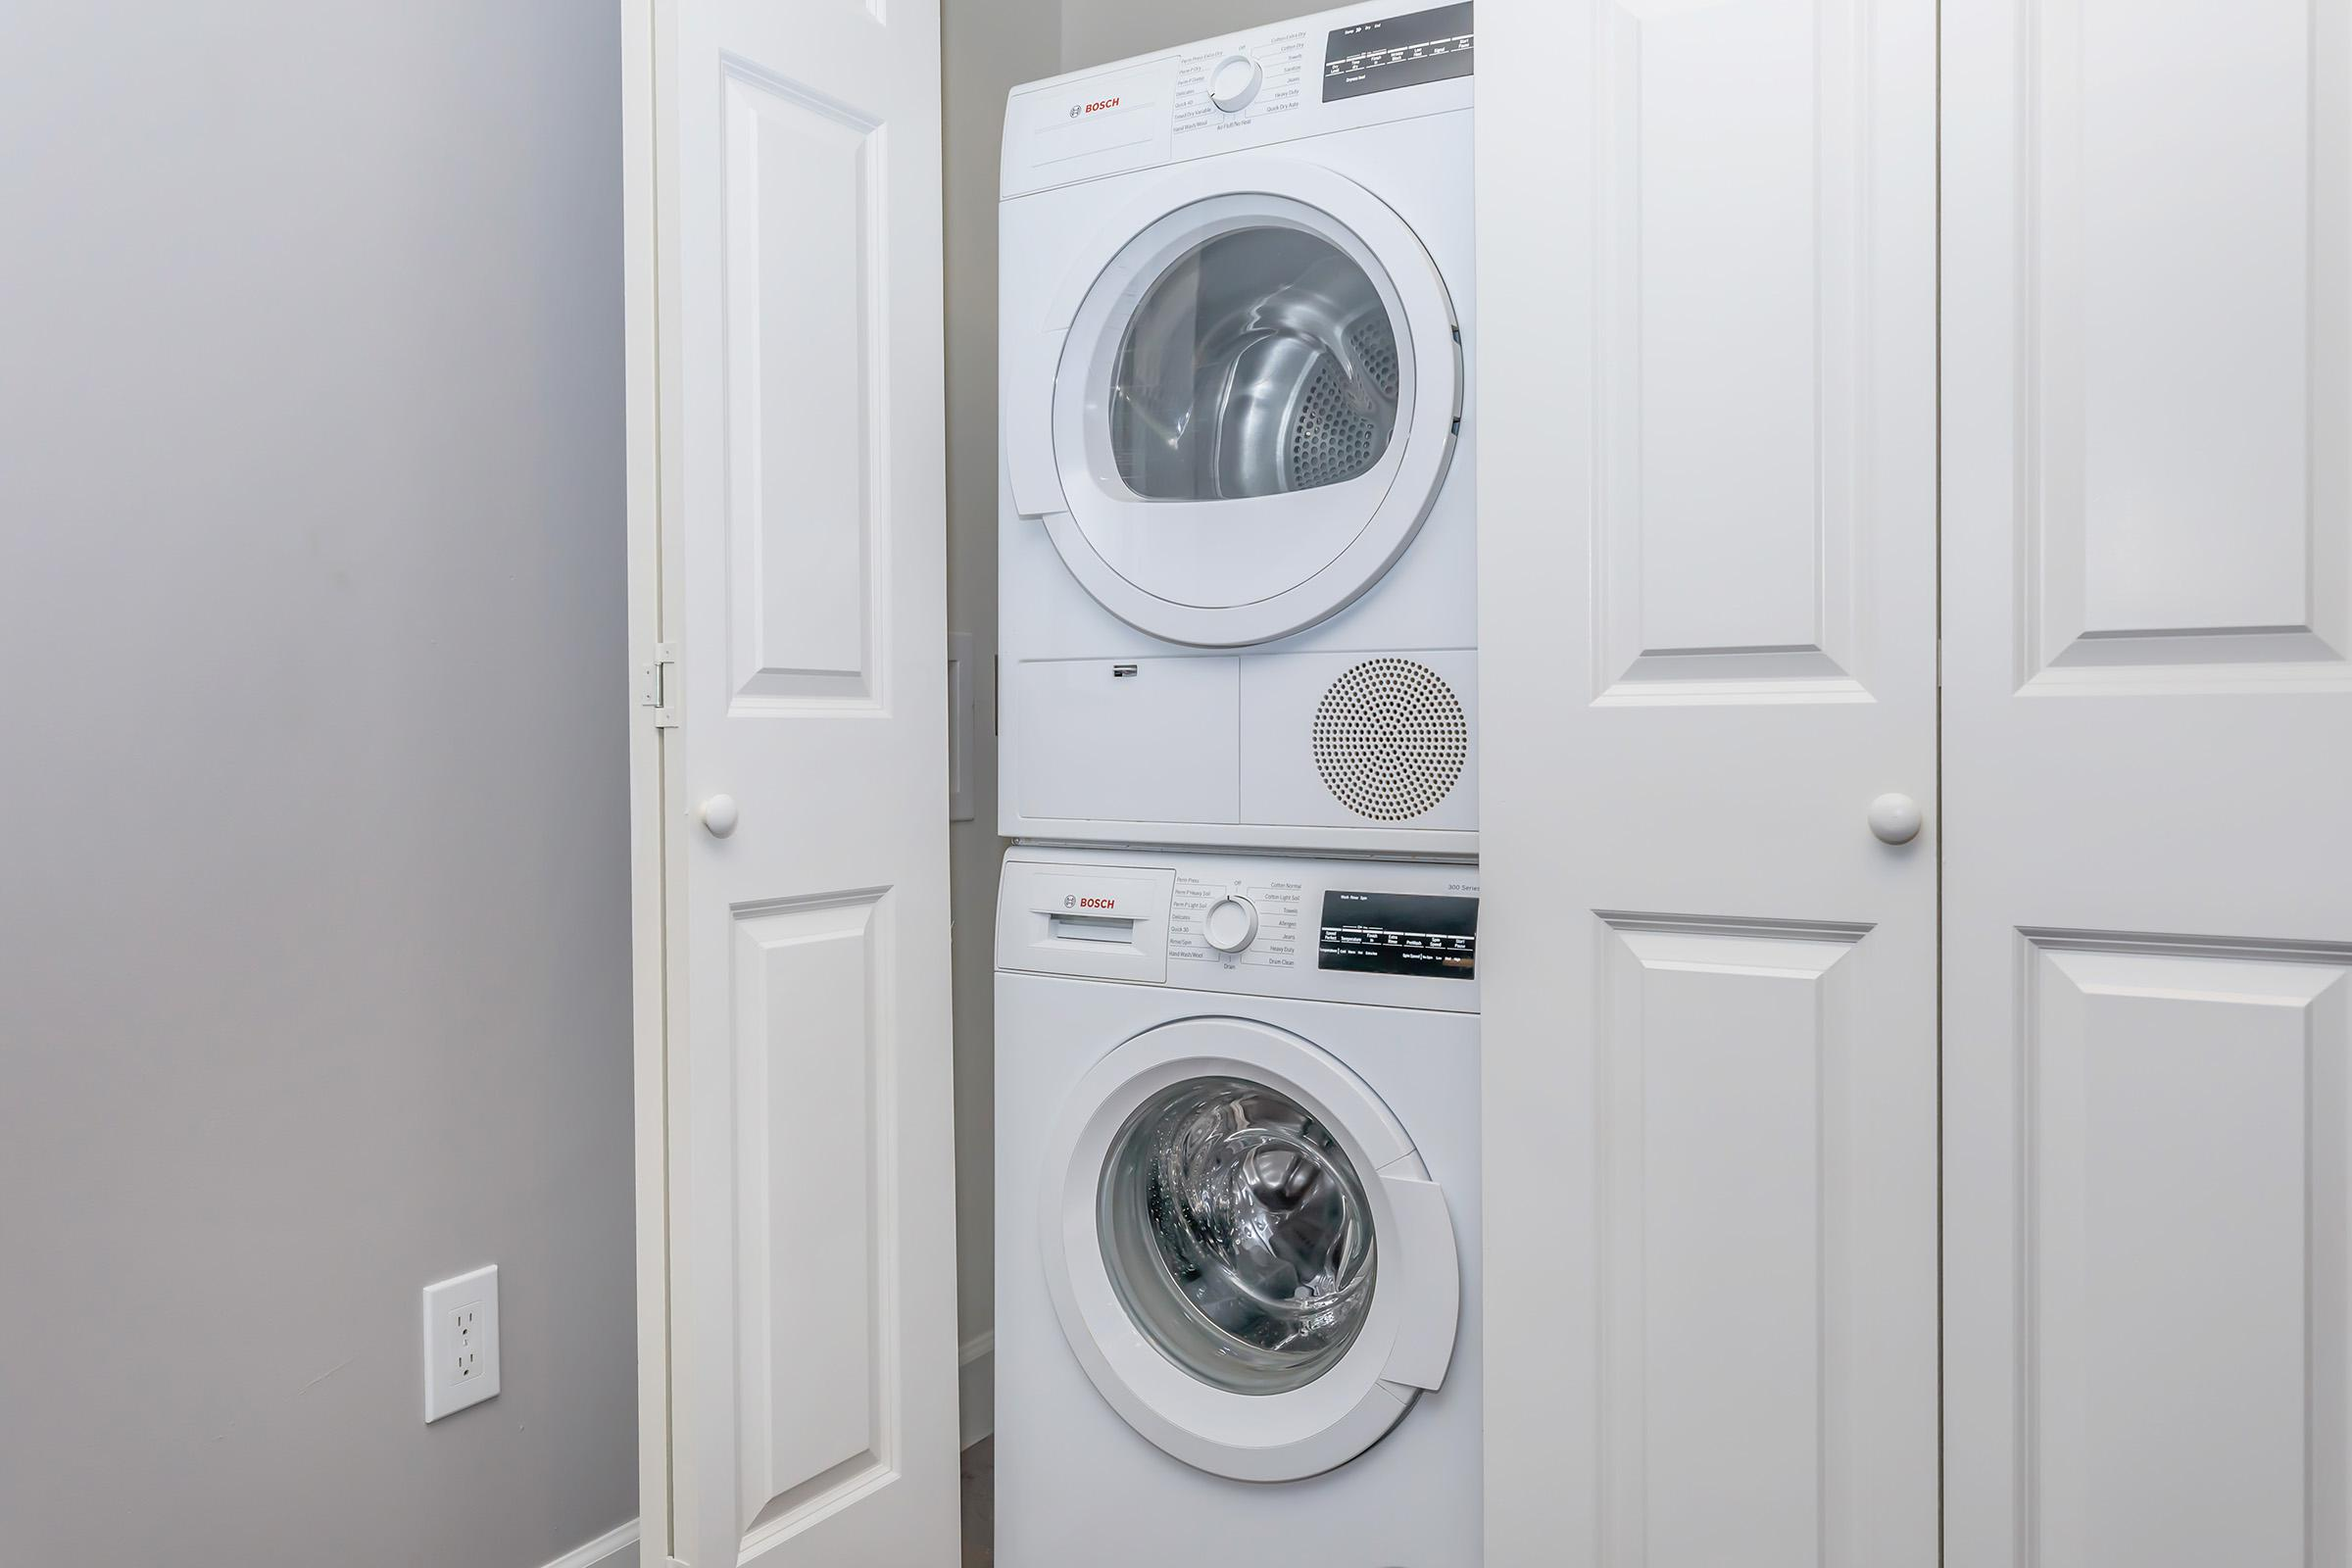 a washer and a mirror